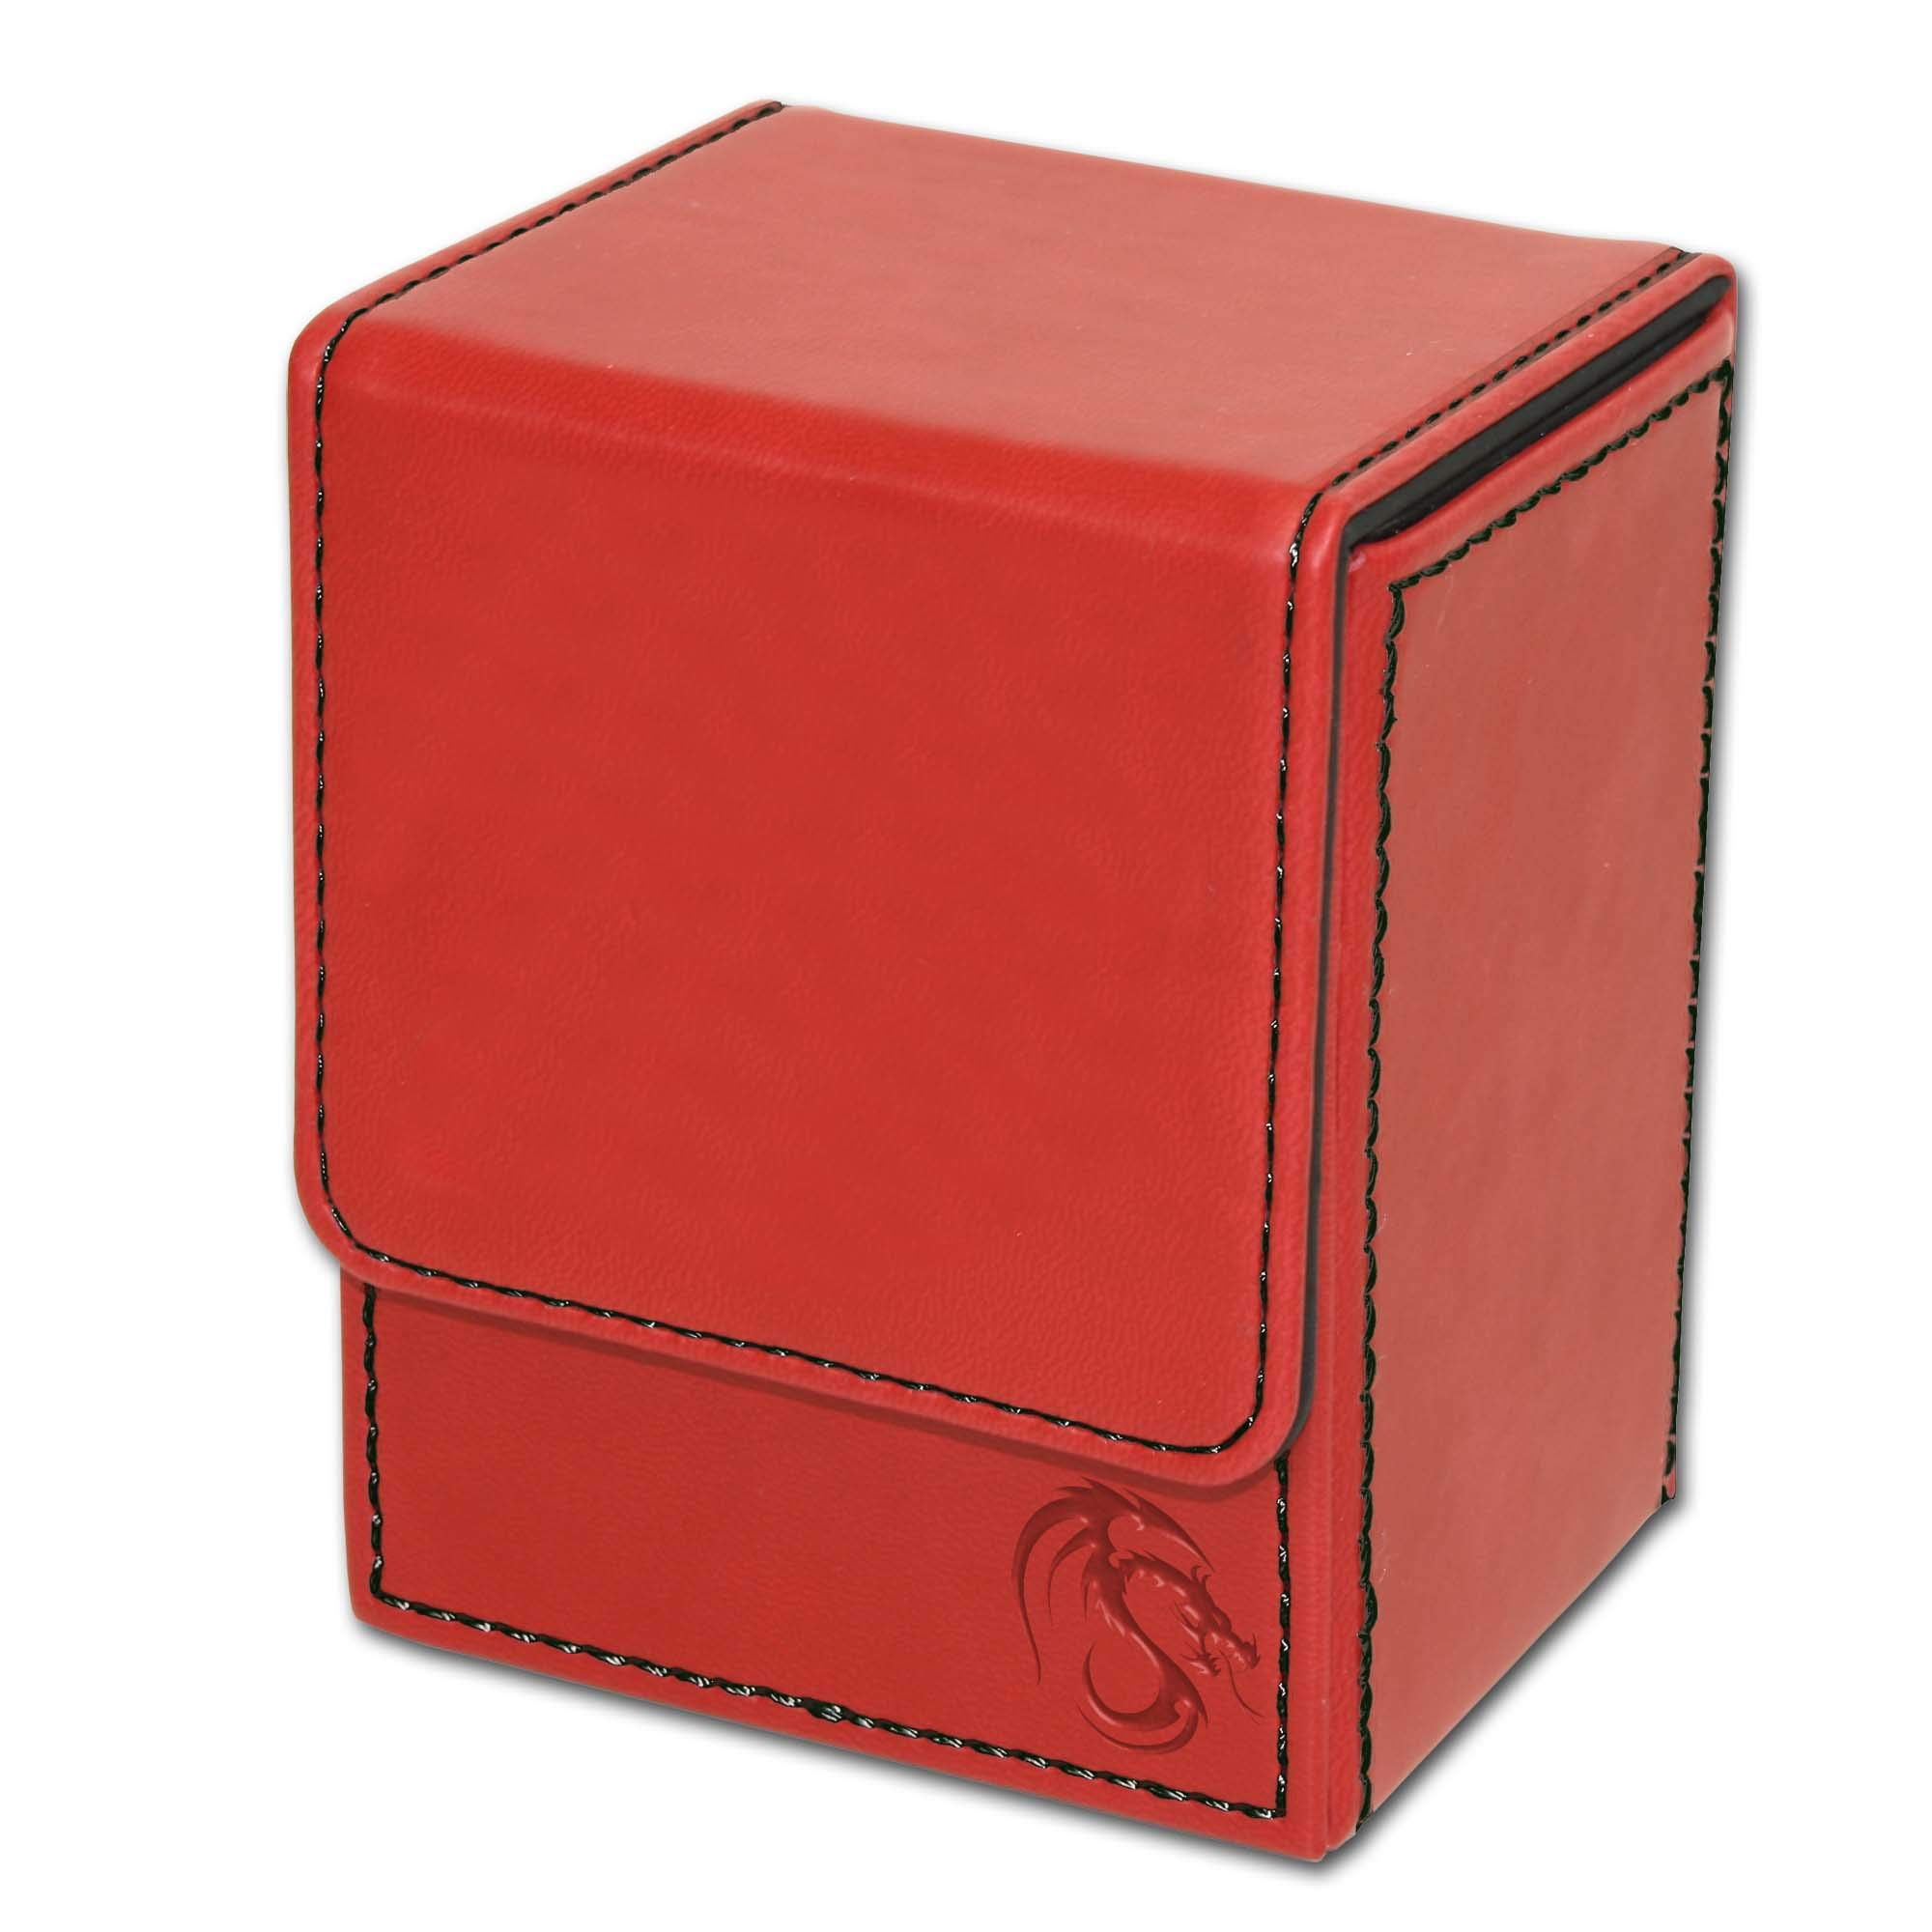 LX Deck Case, Red by BCW